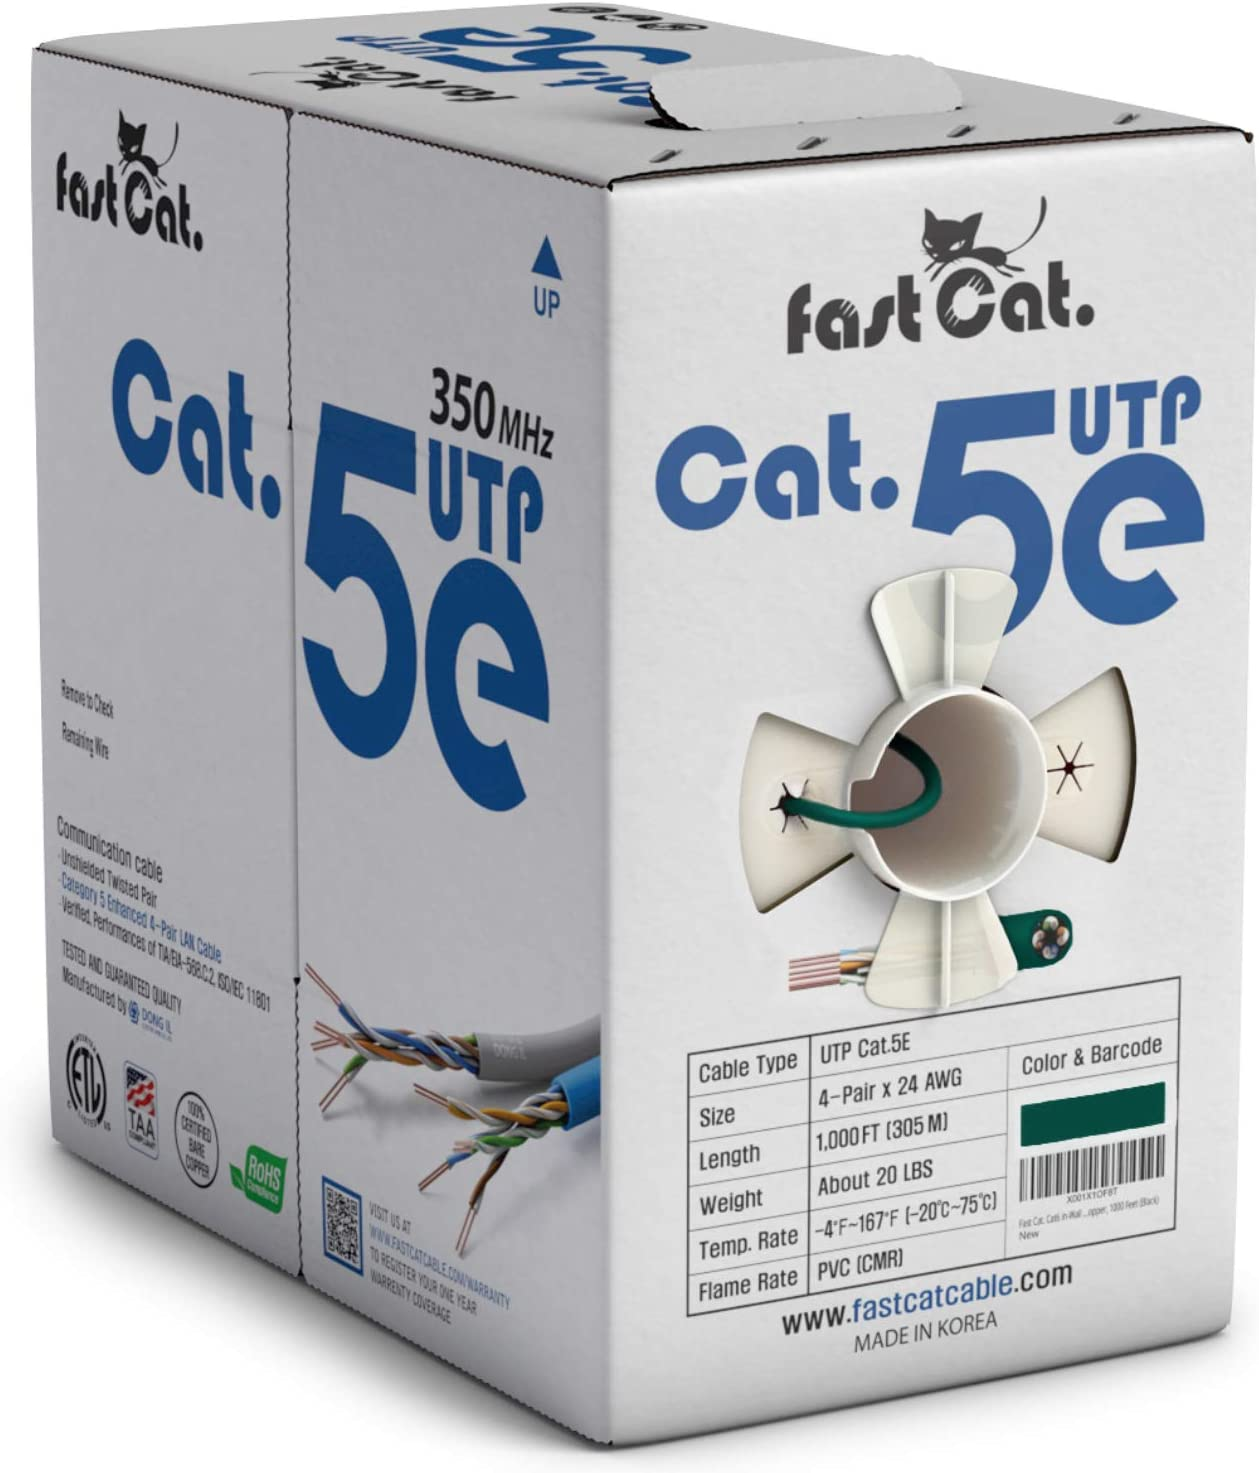 fast Cat CMR Cat5e Ethernet Cable 1000ft Gray 350MHZ // Gigabit Speed UTP LAN Cable Insulated Bare Copper Wire Internet Cable with FastReel